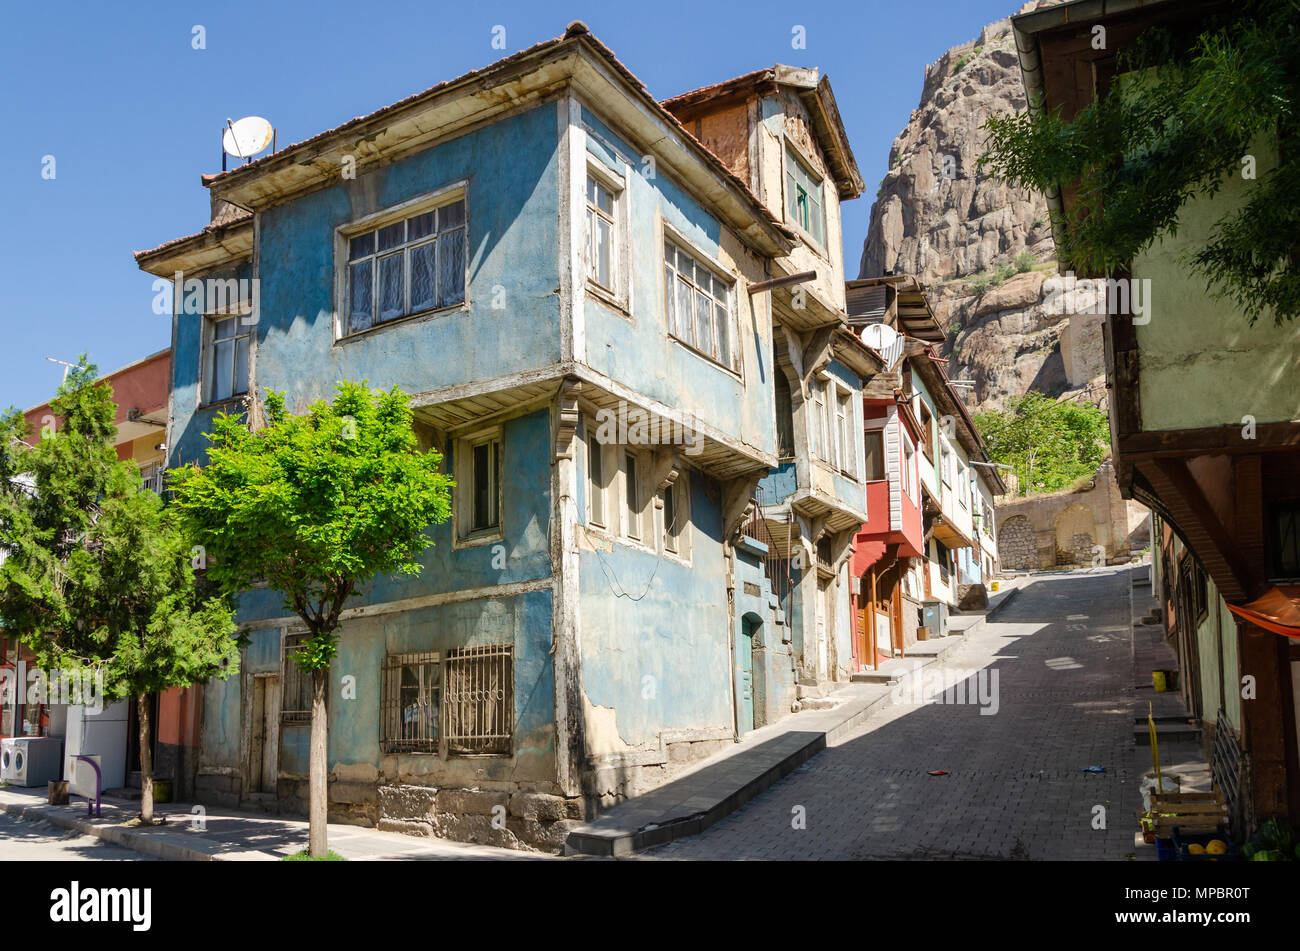 Beautiful old street in downtown with houses with wooden shutters in the classic Turkish Ottoman style, Turkey, center of Afyonkarahisar The two-story - Stock Image